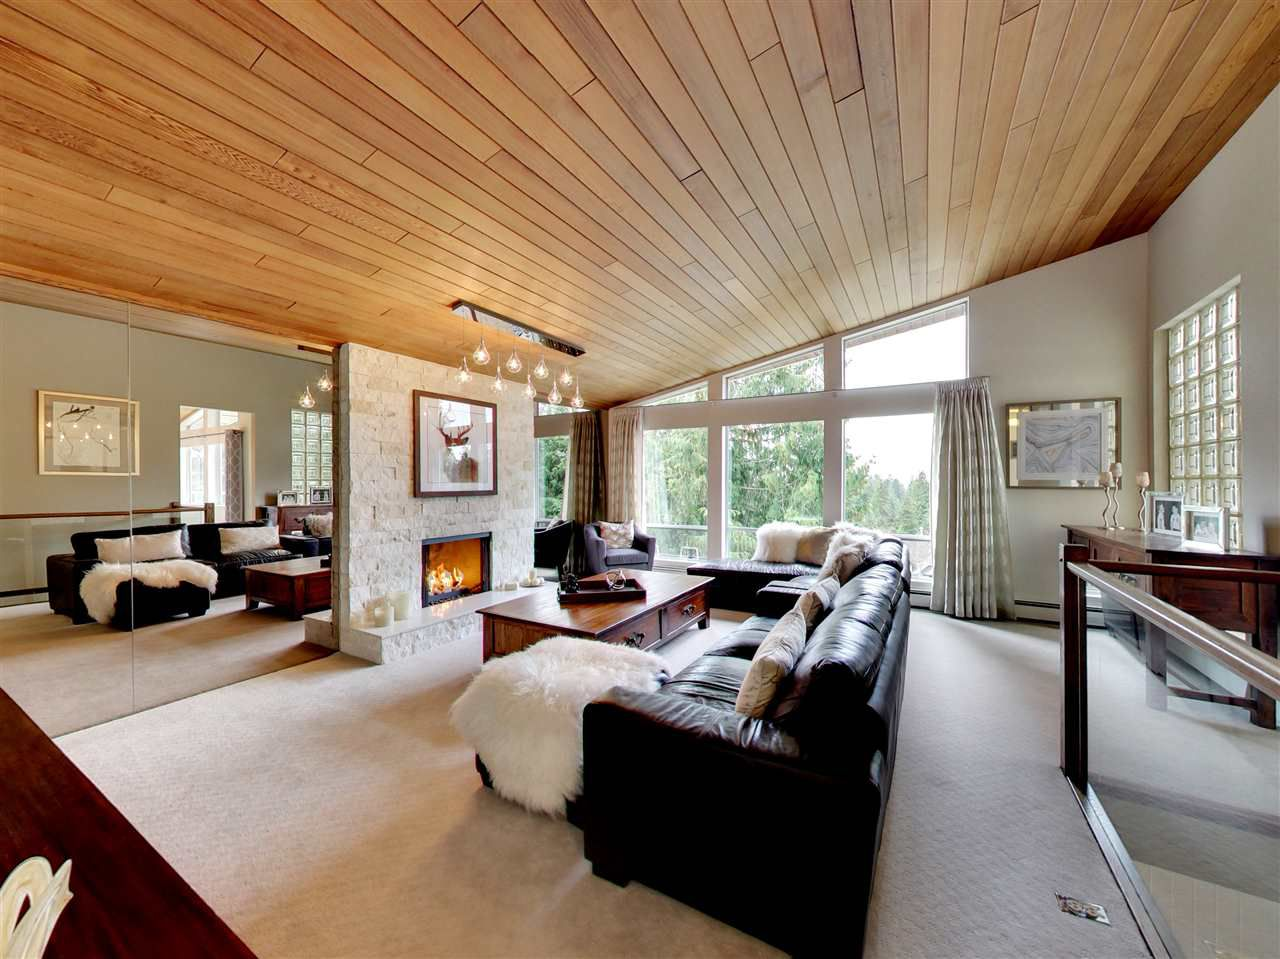 Main Photo: 510 E BRAEMAR Road in North Vancouver: Upper Lonsdale House for sale : MLS®# R2162366